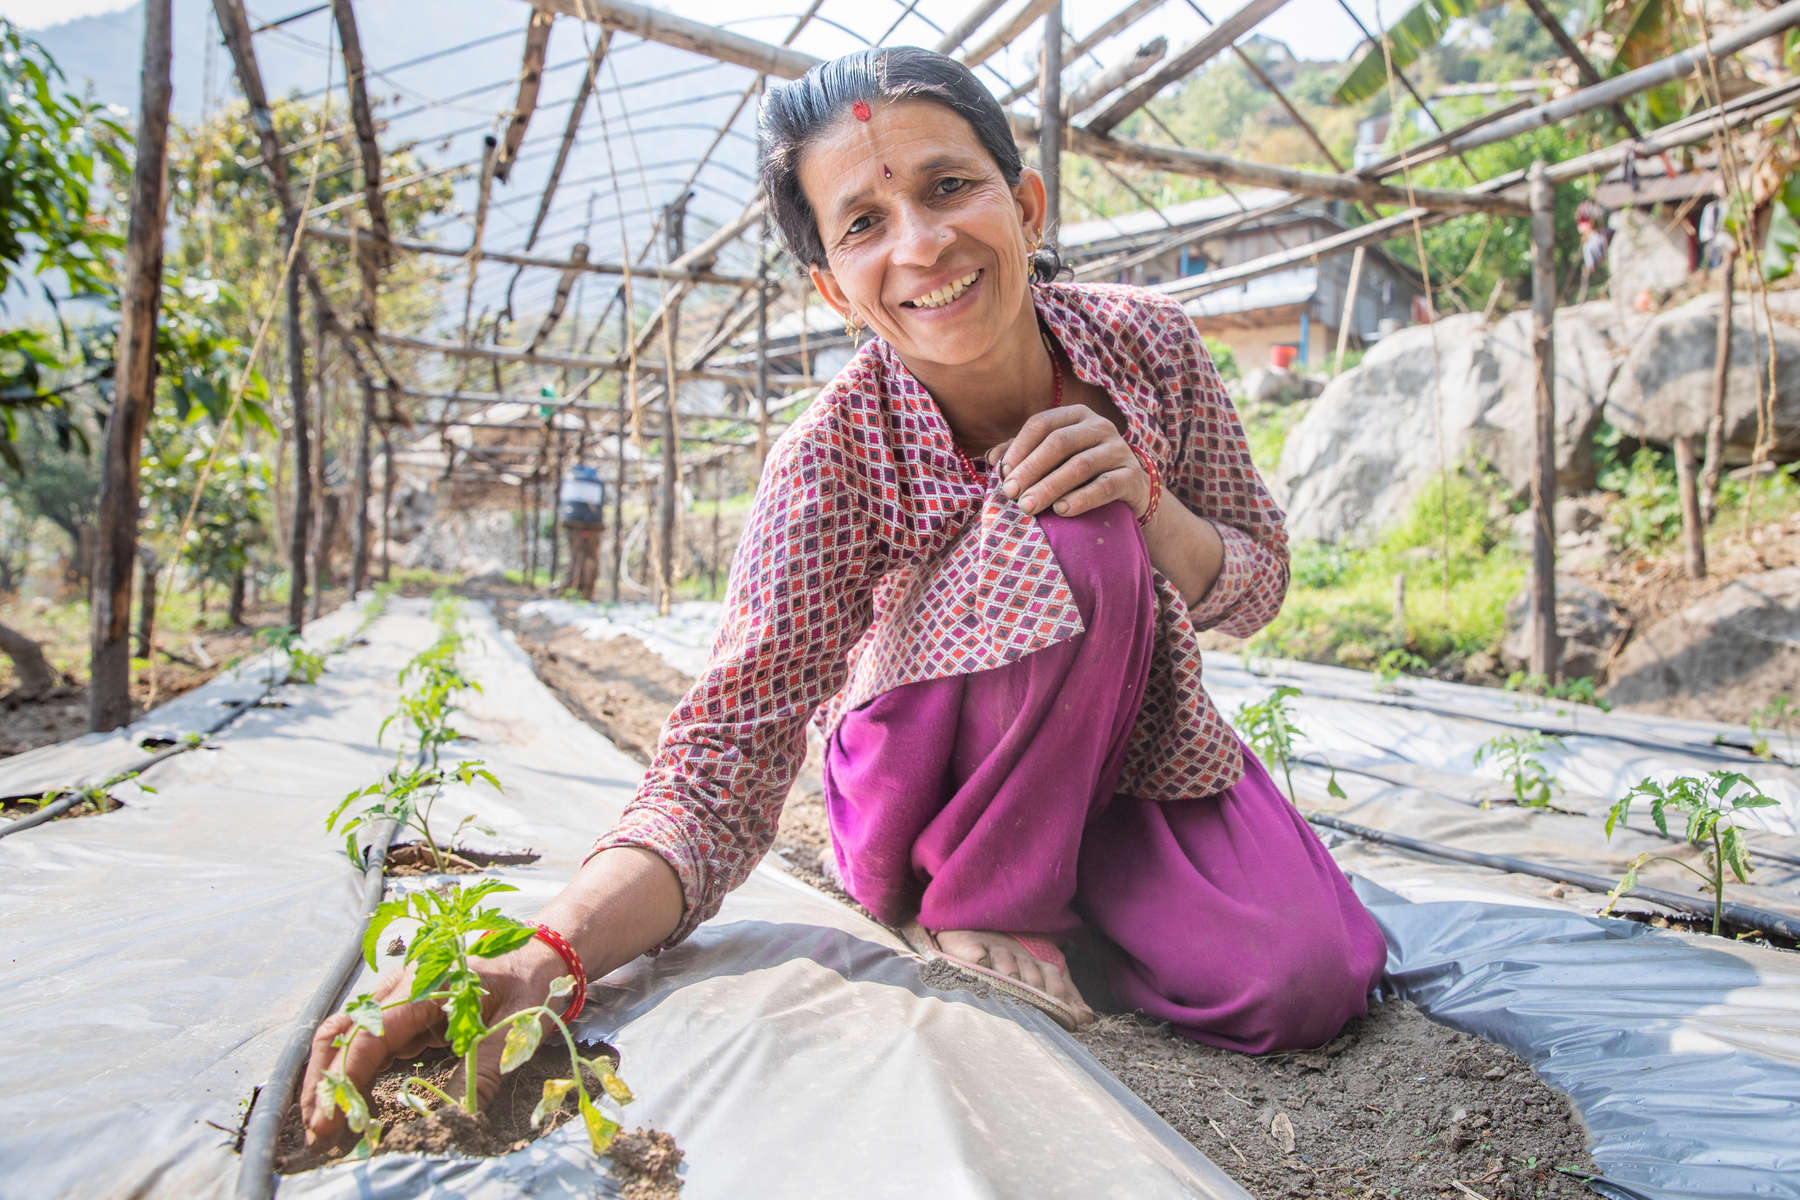 """Sabitri Phuyal weeds her family's tomato plants. She and her husband Shyam Prasad depended on their vegetable farm for food and income until the 2015 earthquakes triggered a landslide that wiped out their fields and made it unsafe for them to live in their home. They lived in a temporary shelter with four other families for nine months, and couldn't work, until Mercy Corps built a gabion wall that secured the hillside above the couple's home. After the wall was built, Shyam and Sabitri finally felt safe enough to return and begin rebuilding their lives. They took a Mercy Corps'-facilitated vegetable farming training and received plastic sheeting to build a greenhouse, and also participated in Mercy Corps' family dialogue training, which helps women and heads of household work to together to become stronger and more resilient. """"We had lost all hope of coming back. With all that happened, we don't have enough wealth to relocate somewhere else and start a new life as well. So we got encouragement to start farming here, start making our livelihood here again,"""" says Shyam. """"I feel happy when he asks me for my opinion,"""" Sabitri says. """"Before he would just do it himself, and he would work in the fields himself. And I would just think, 'OK that's his job. I'll just let him do it.' But when he asks me, I feel like, 'OK, this is my responsibility too.' I feel good about it. """""""